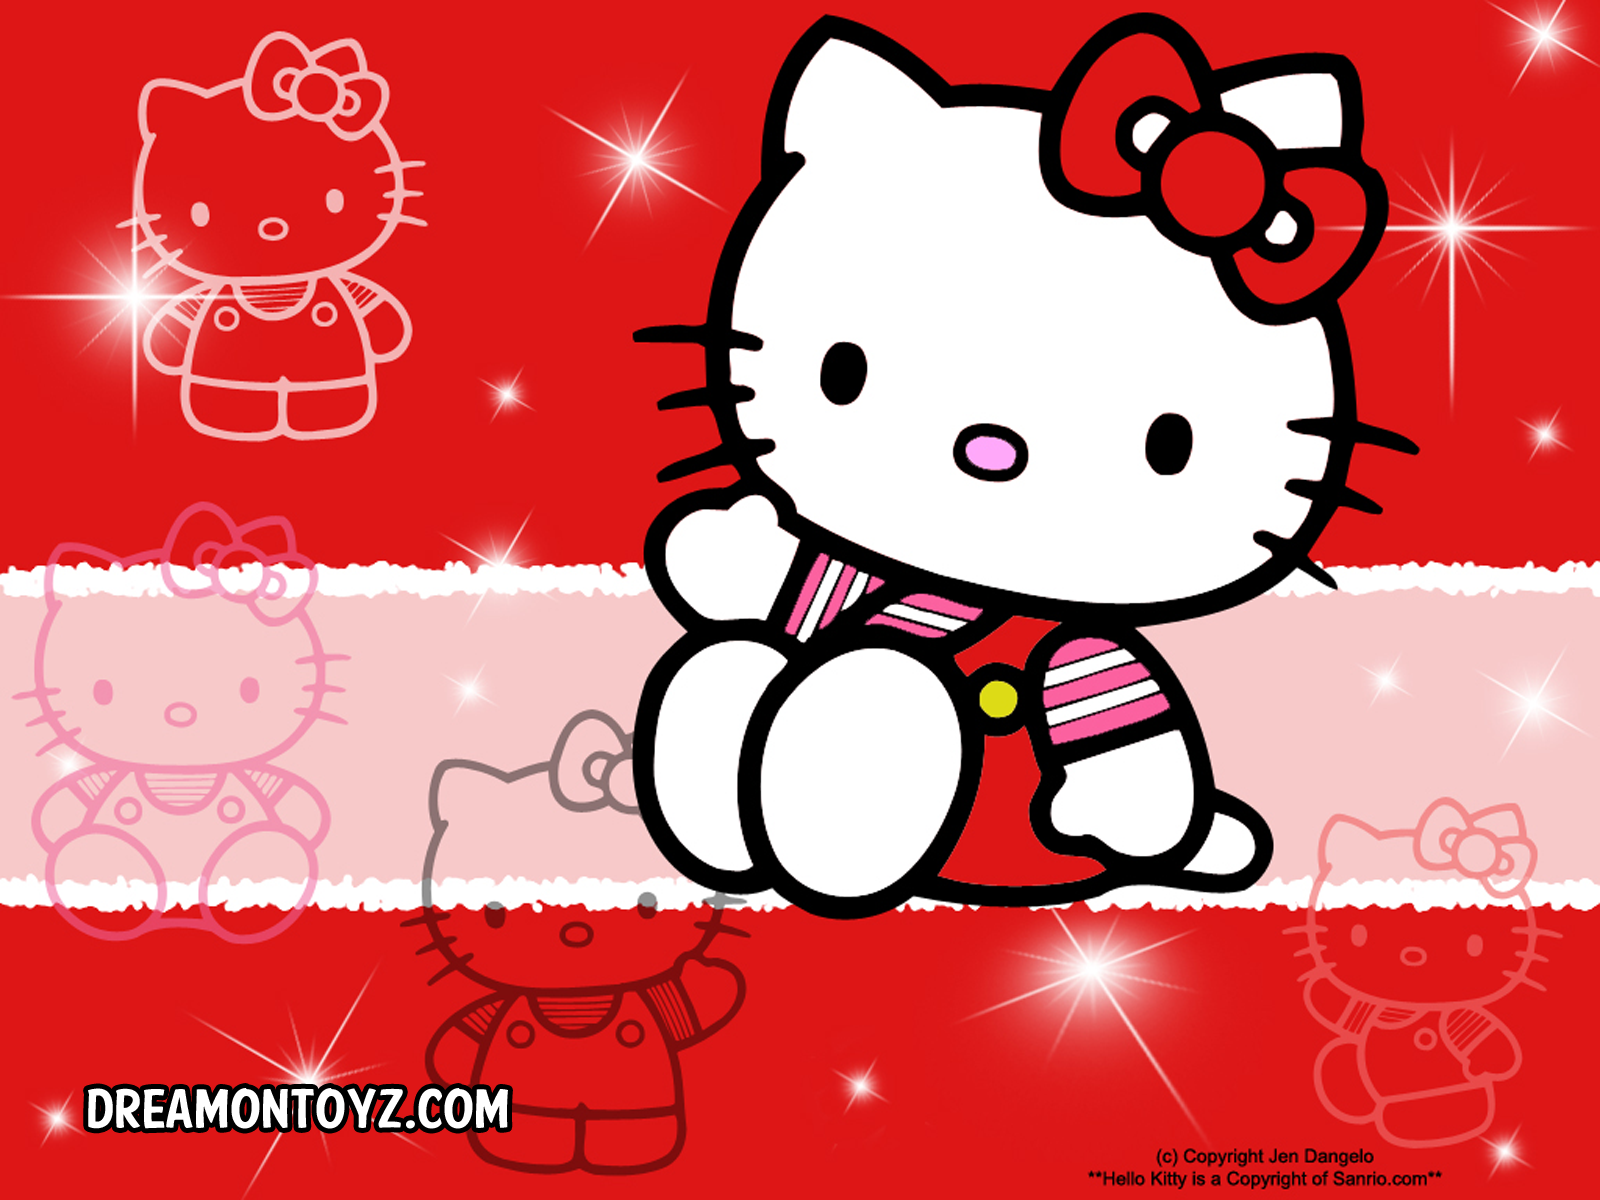 Free cartoon graphics pics gifs photographs hello kitty backgrounds and wallpapers - Hello kitty image ...